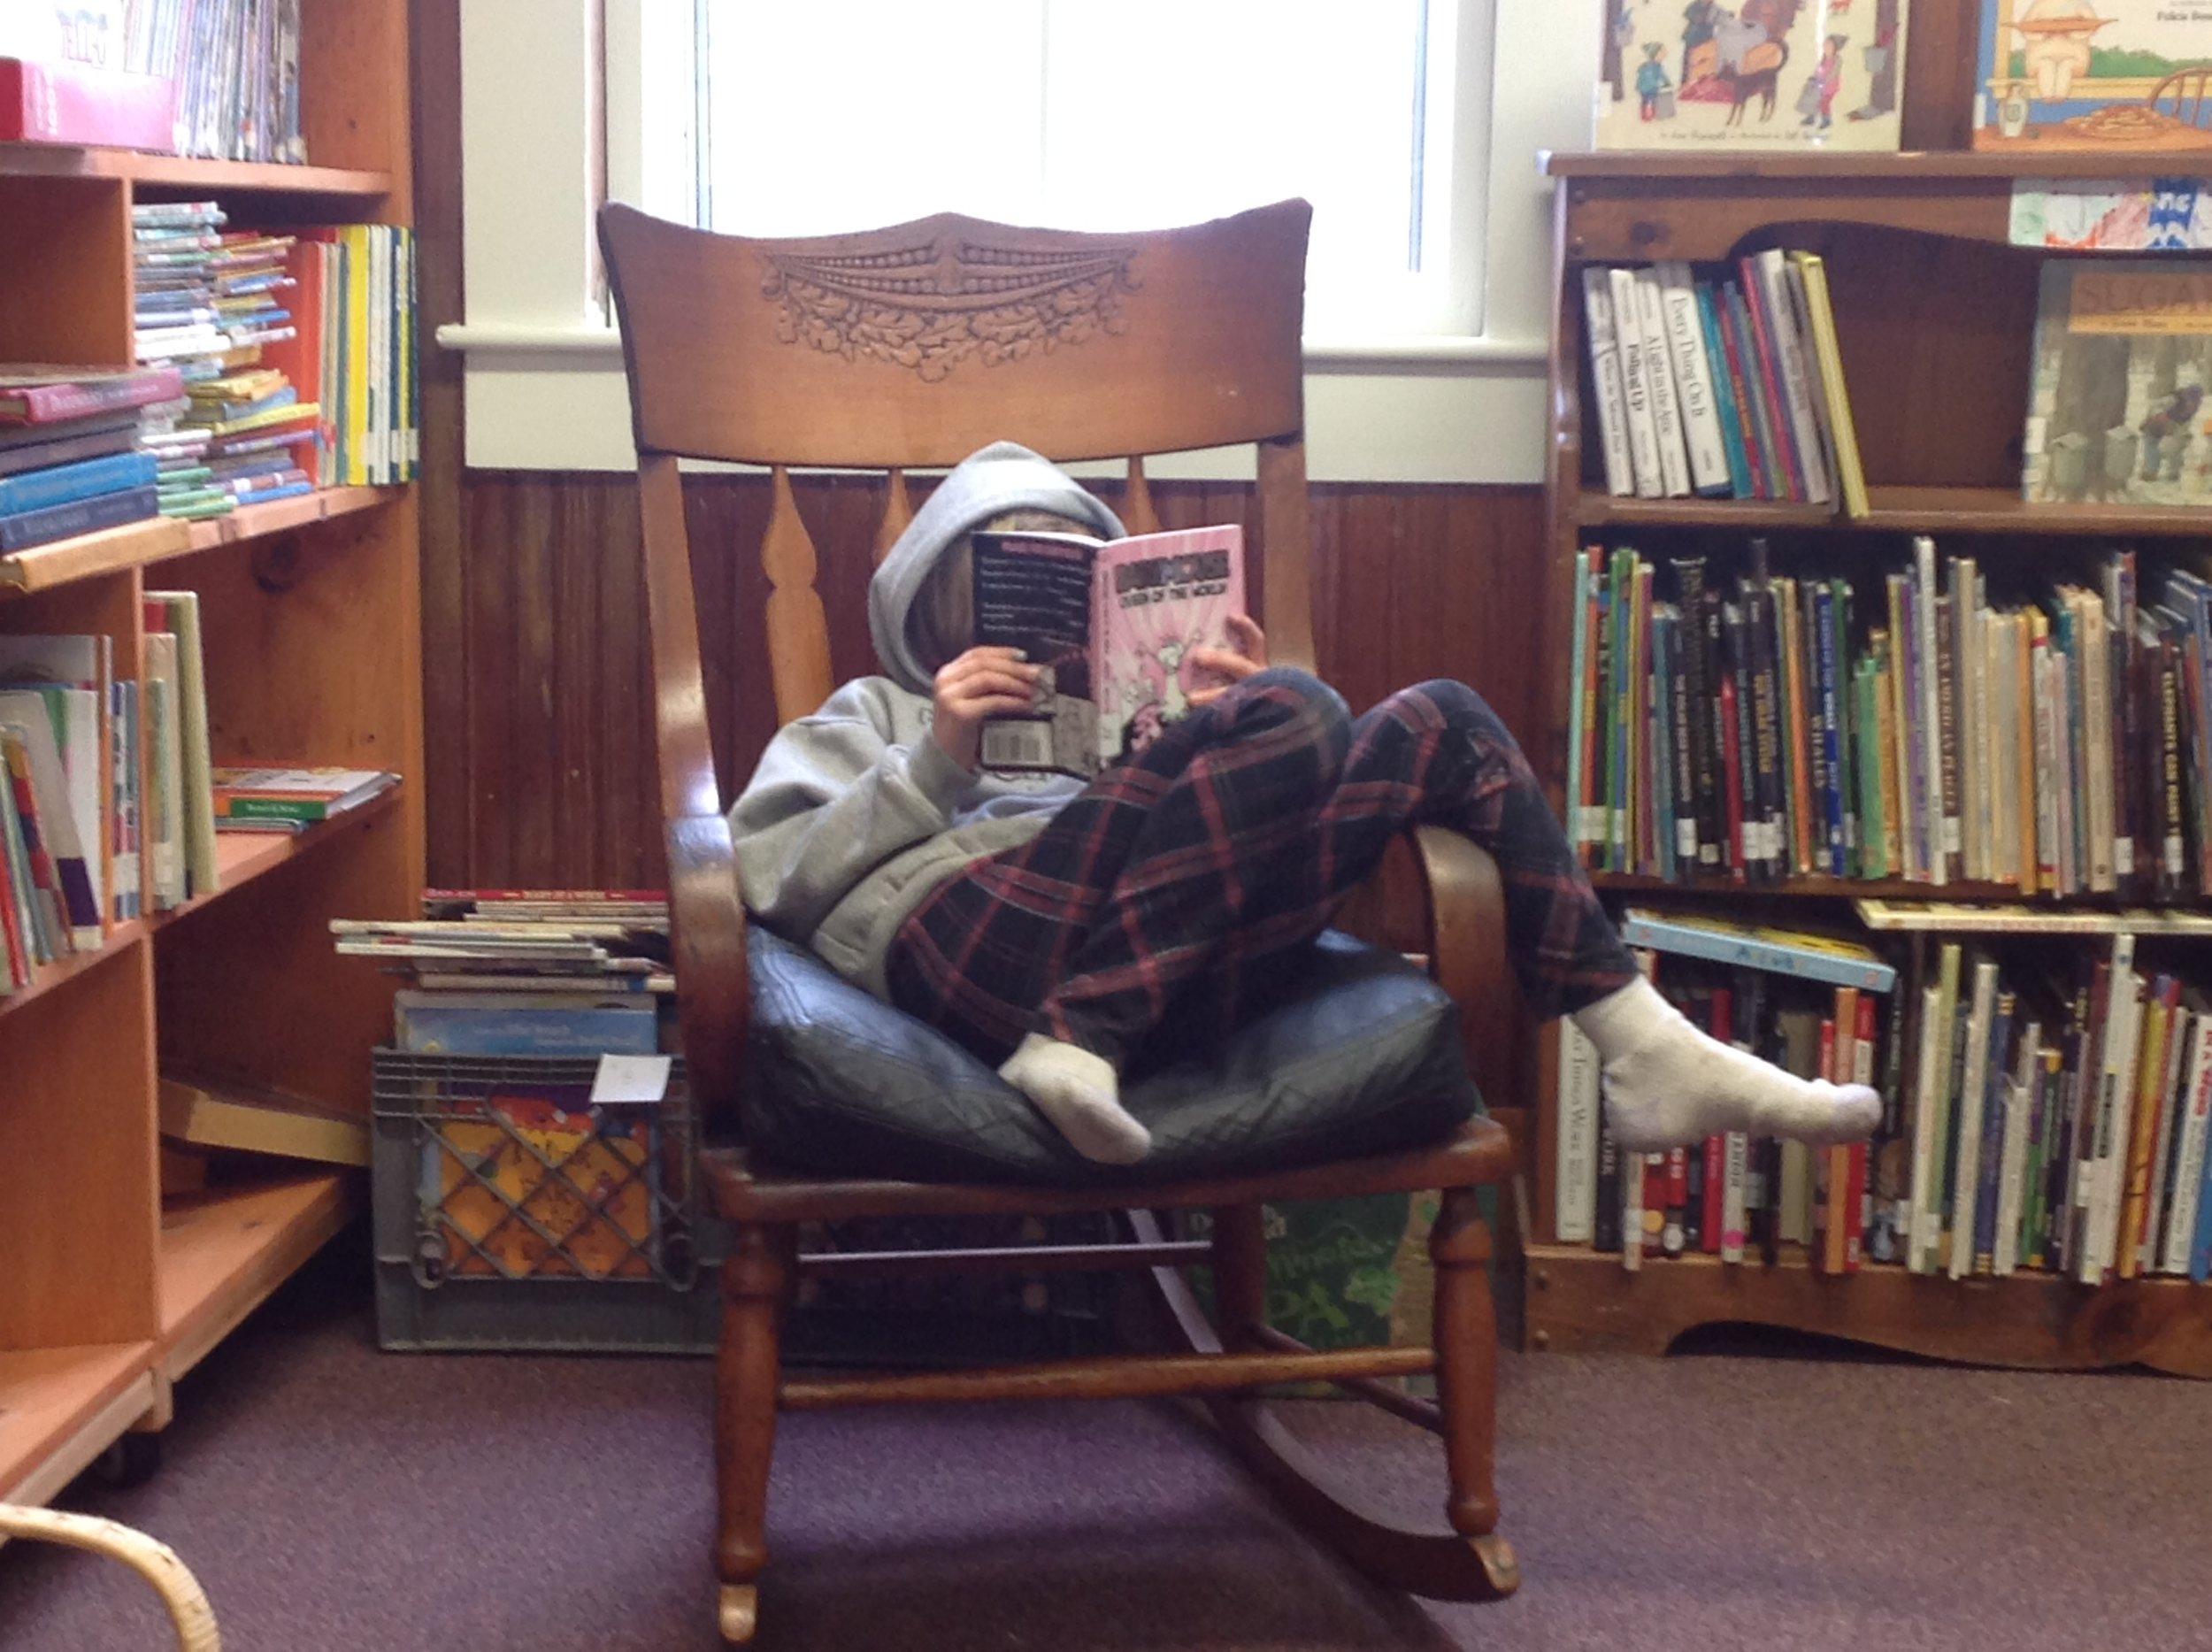 A patron, reading her book in our cozy library seting.